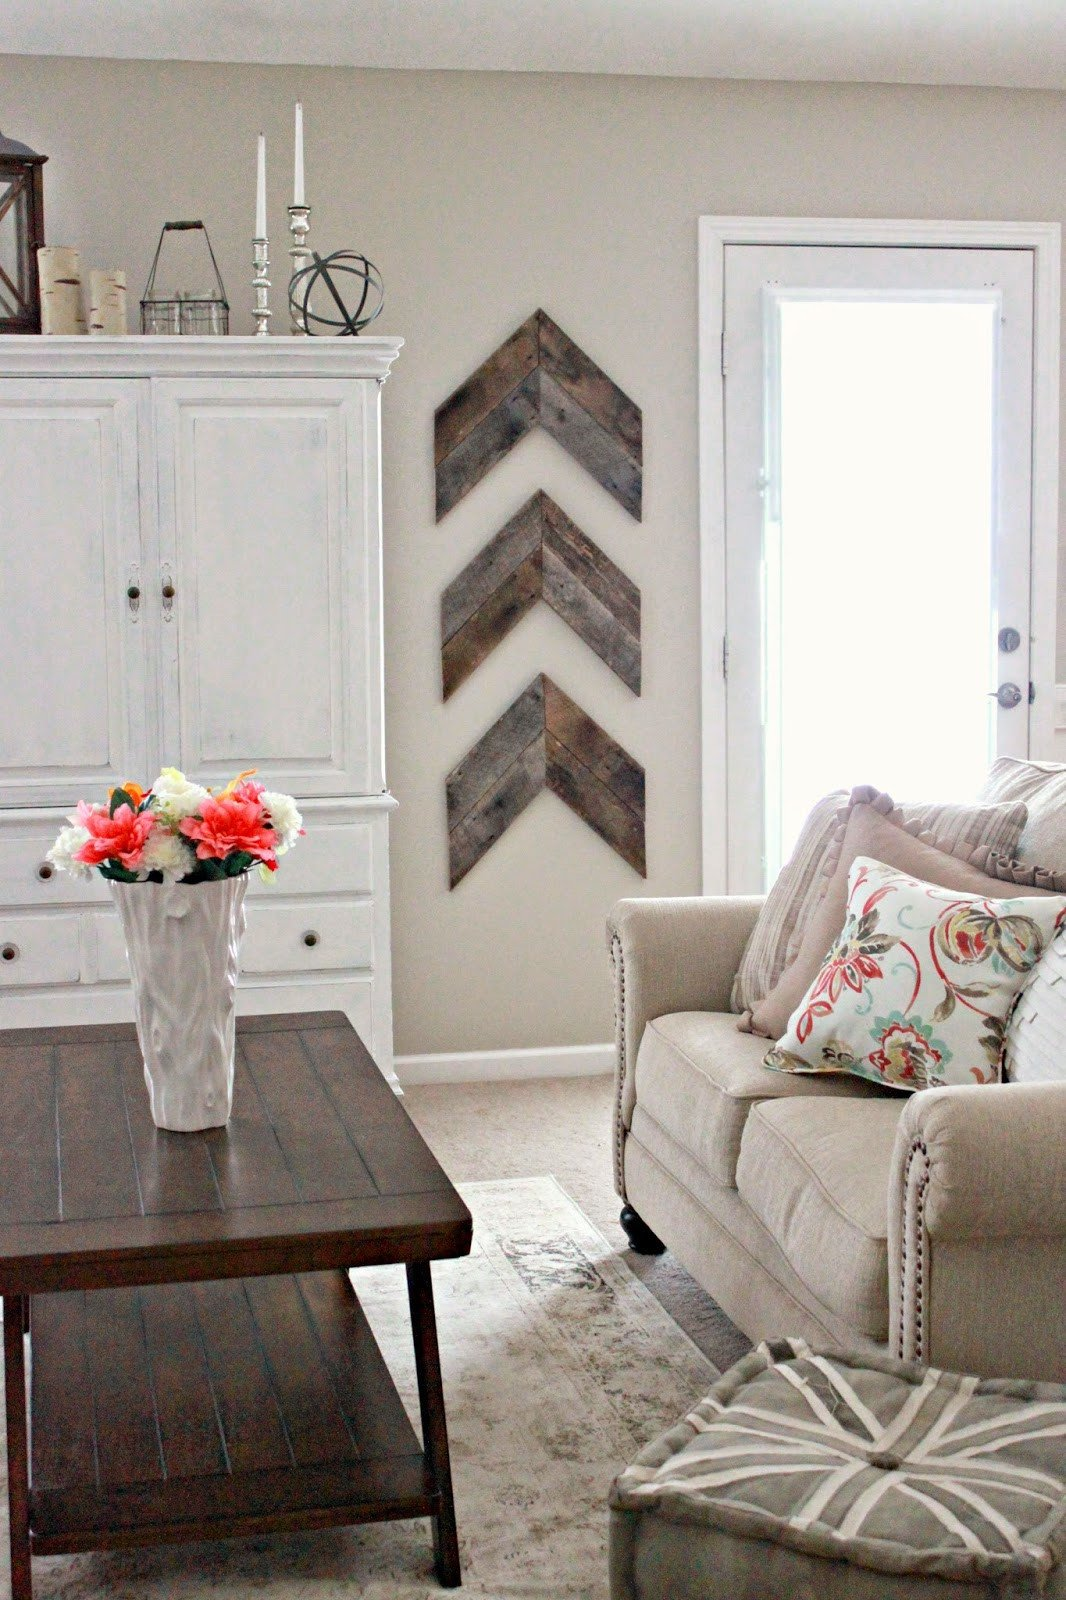 Wall Decor for Living Room 15 Striking Ways to Decorate with Arrows